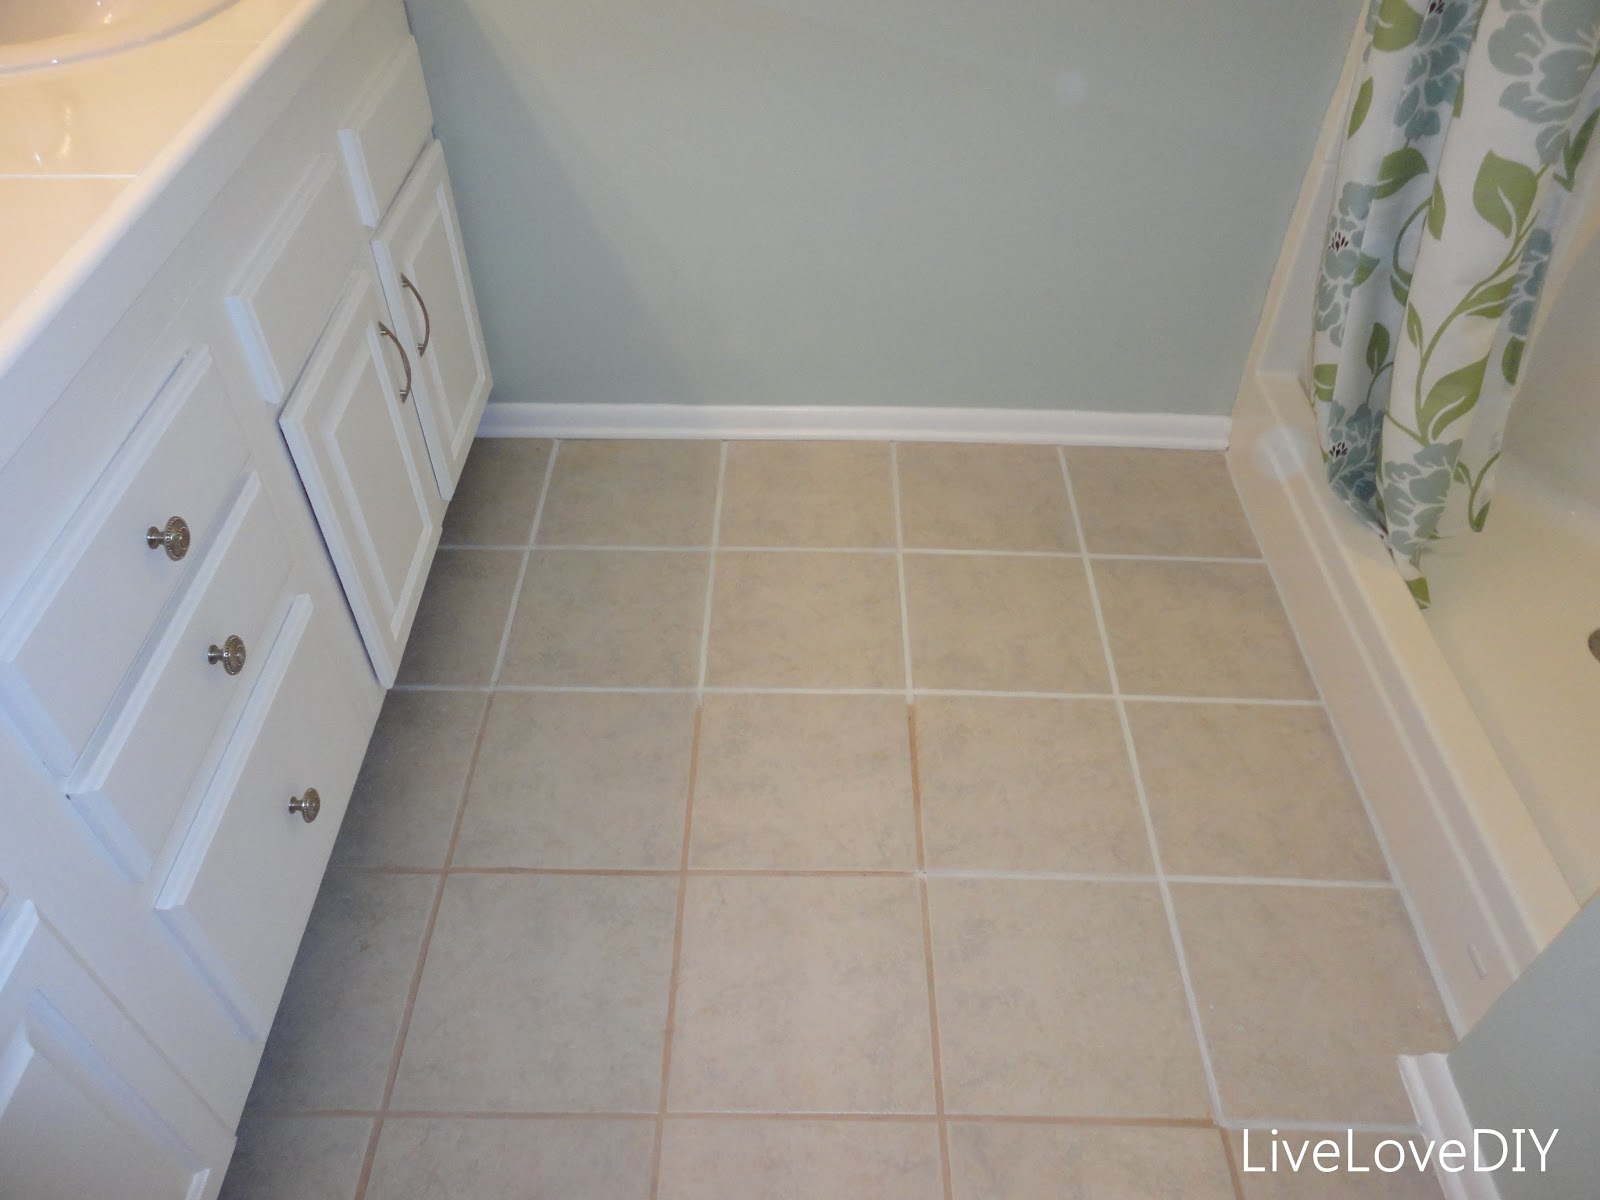 Bathroom Grout livelovediy: how to restore dirty tile grout